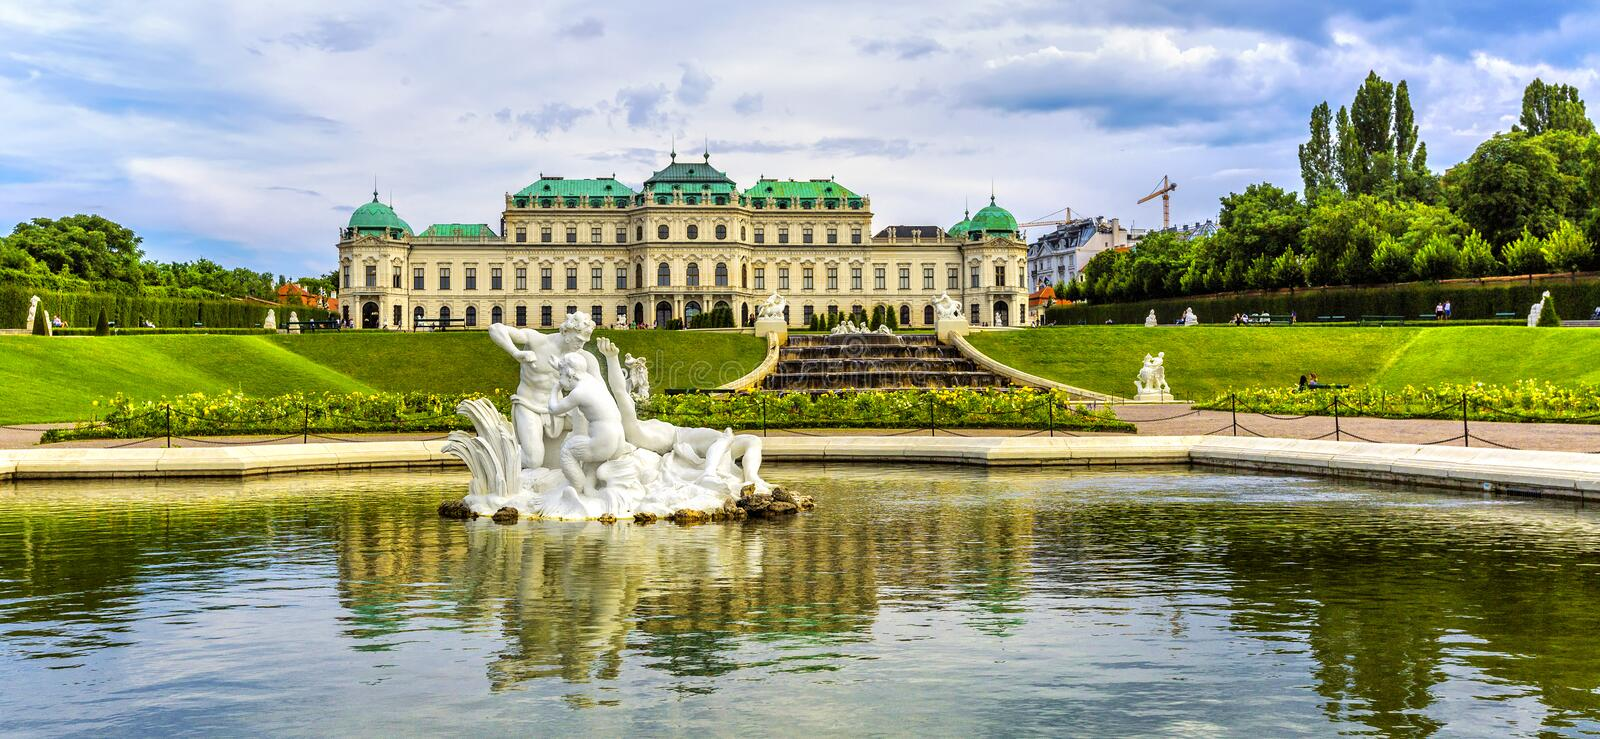 Belvedere palace and garden in Vienna. Austria stock images